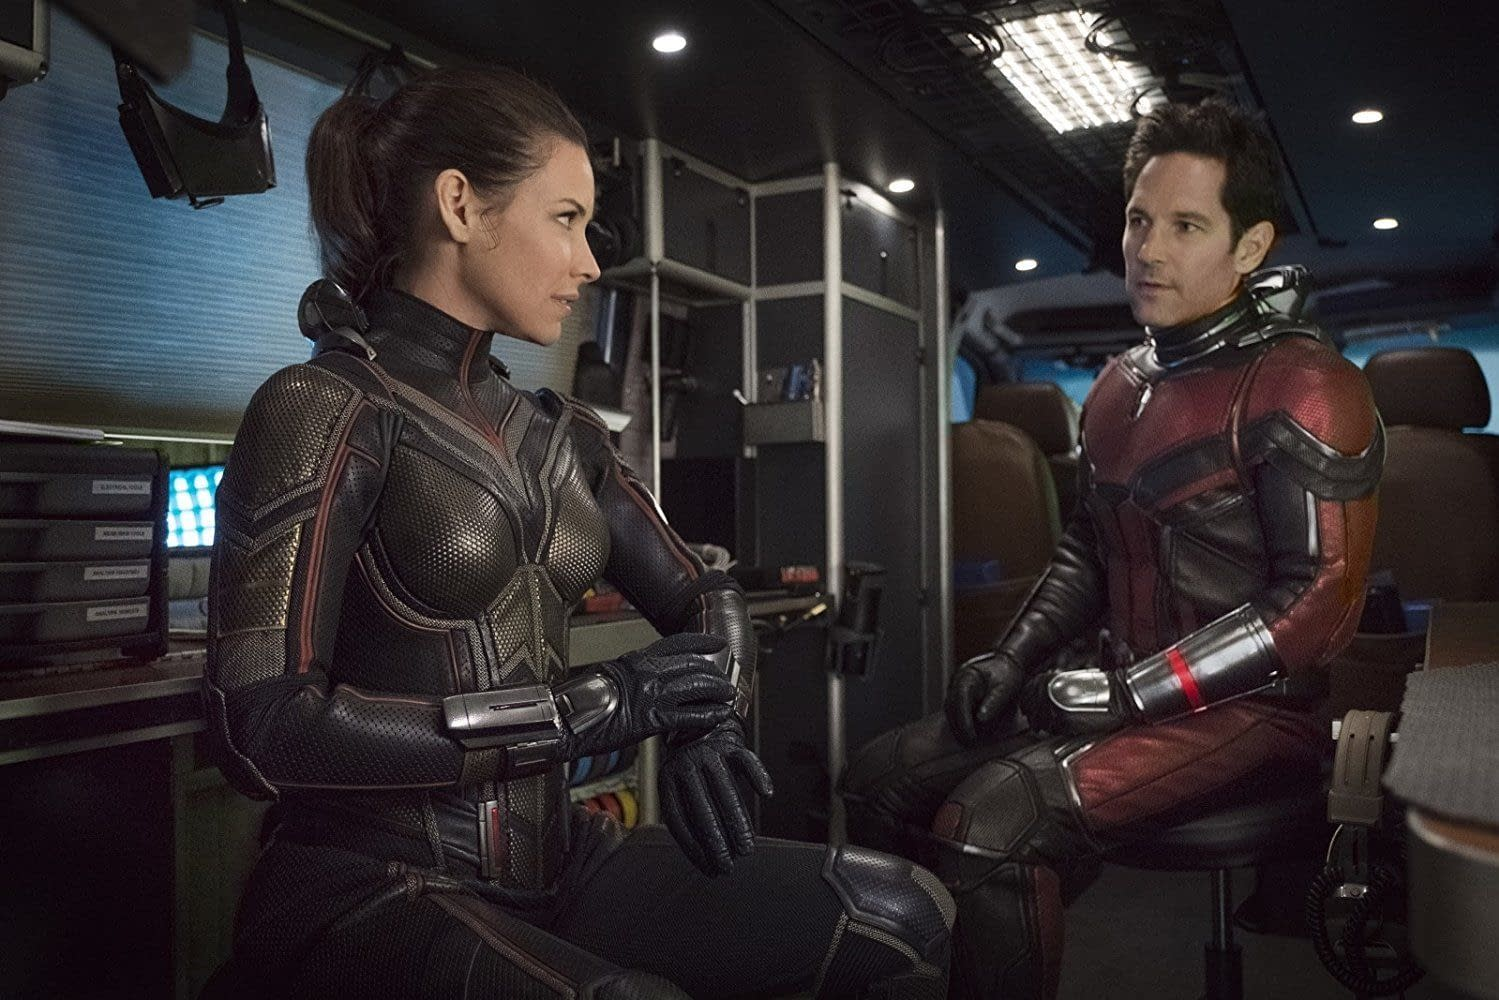 Ant-Man and the Wasp Eyeing a $75M Opening Weekend